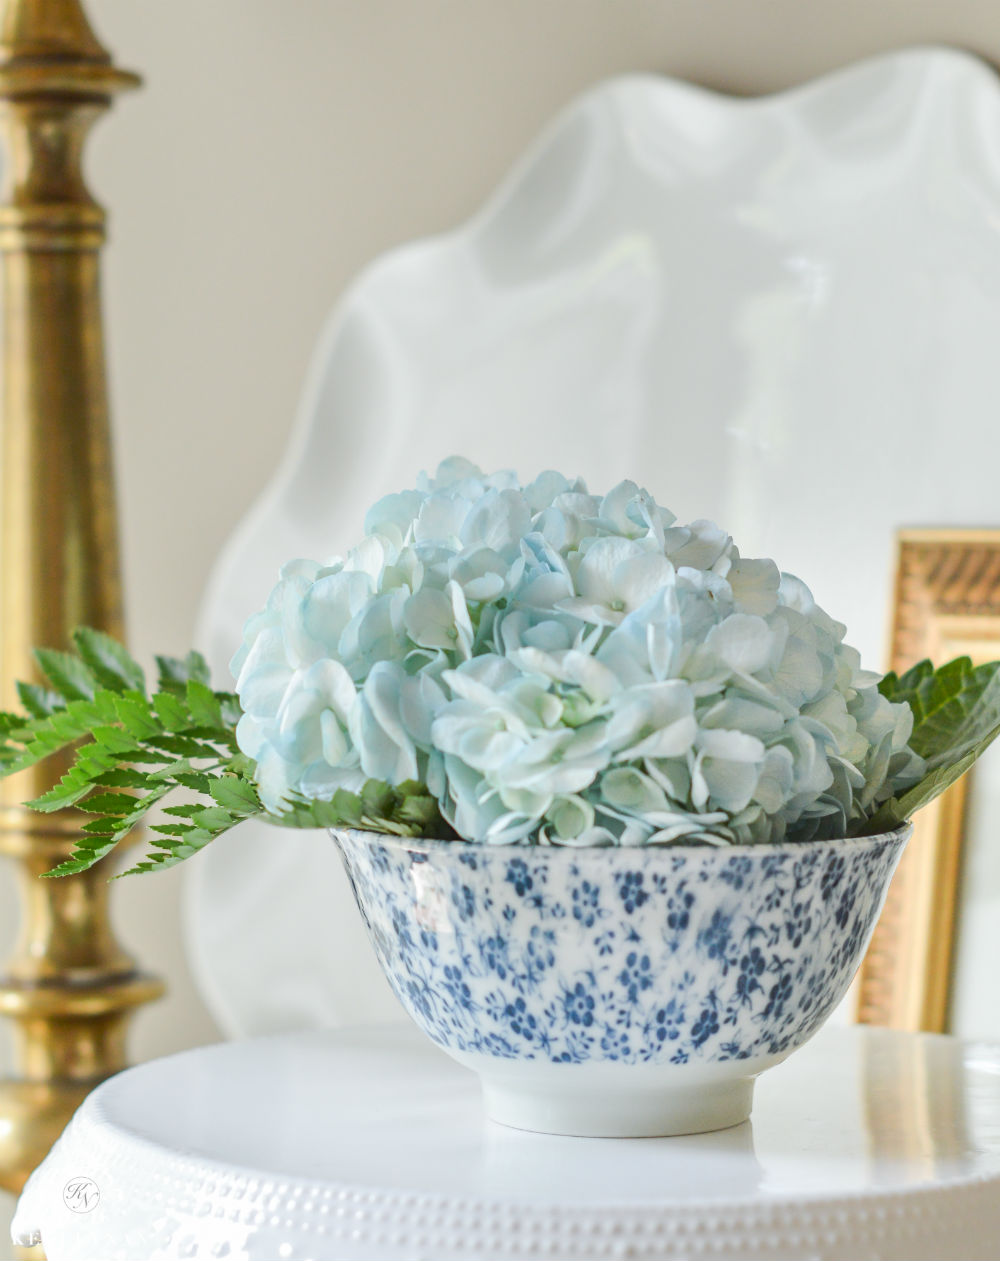 vase of blue hydrangeas